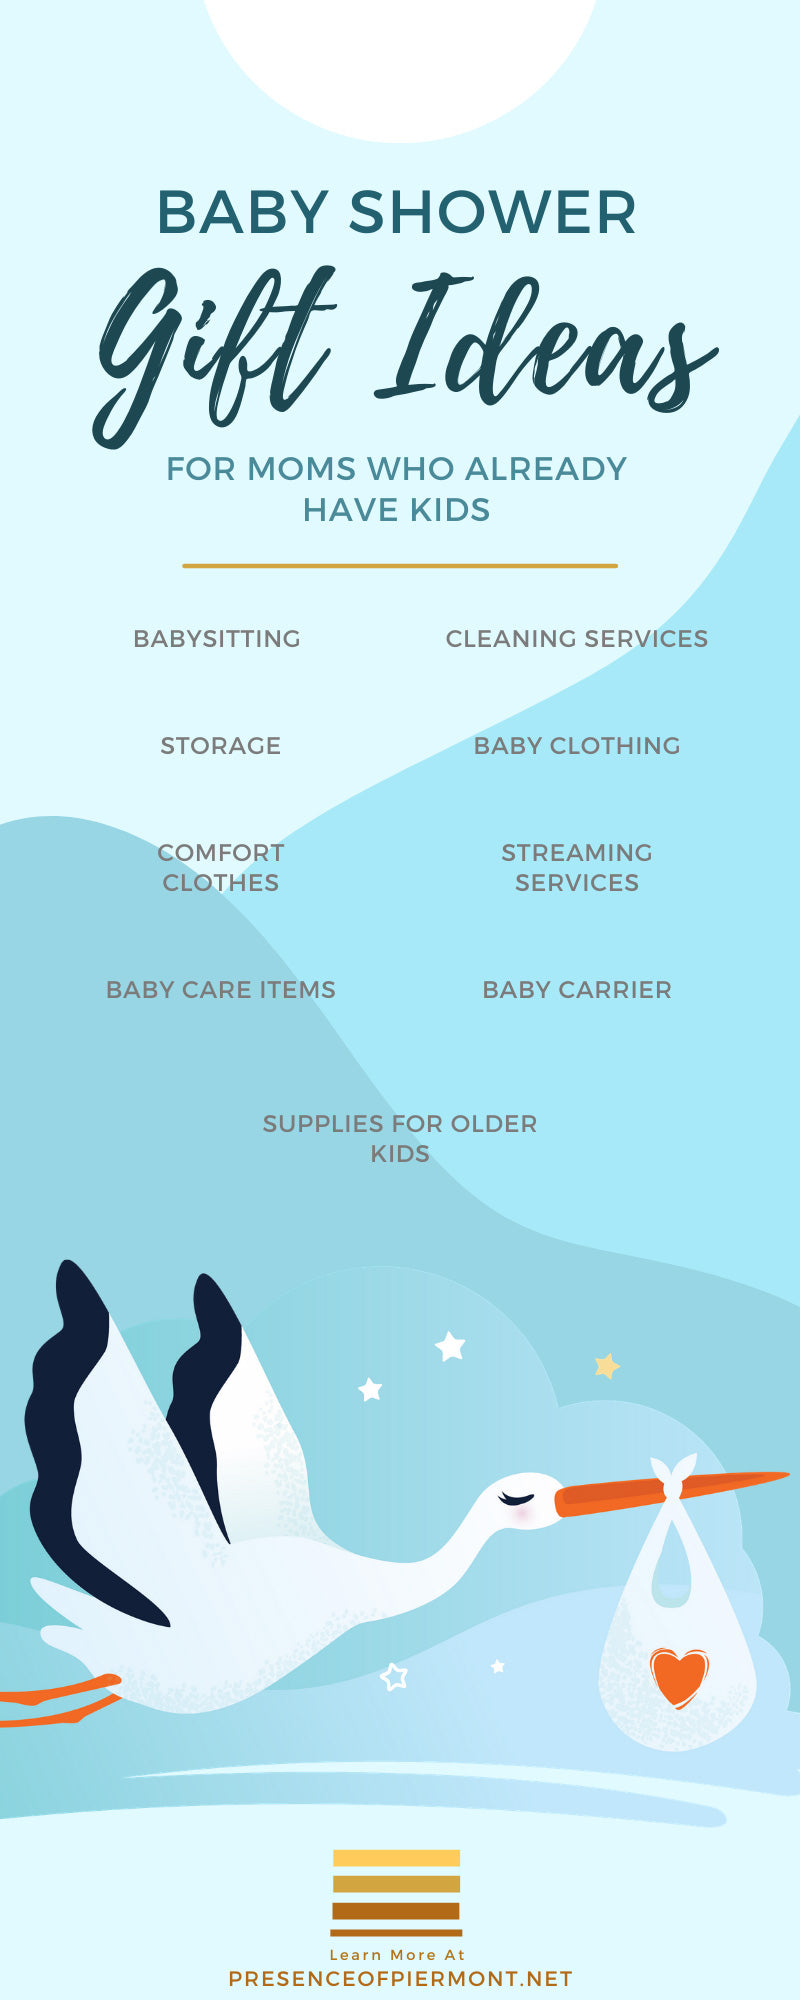 Baby Shower Gift Ideas for Moms Who Already Have Kids